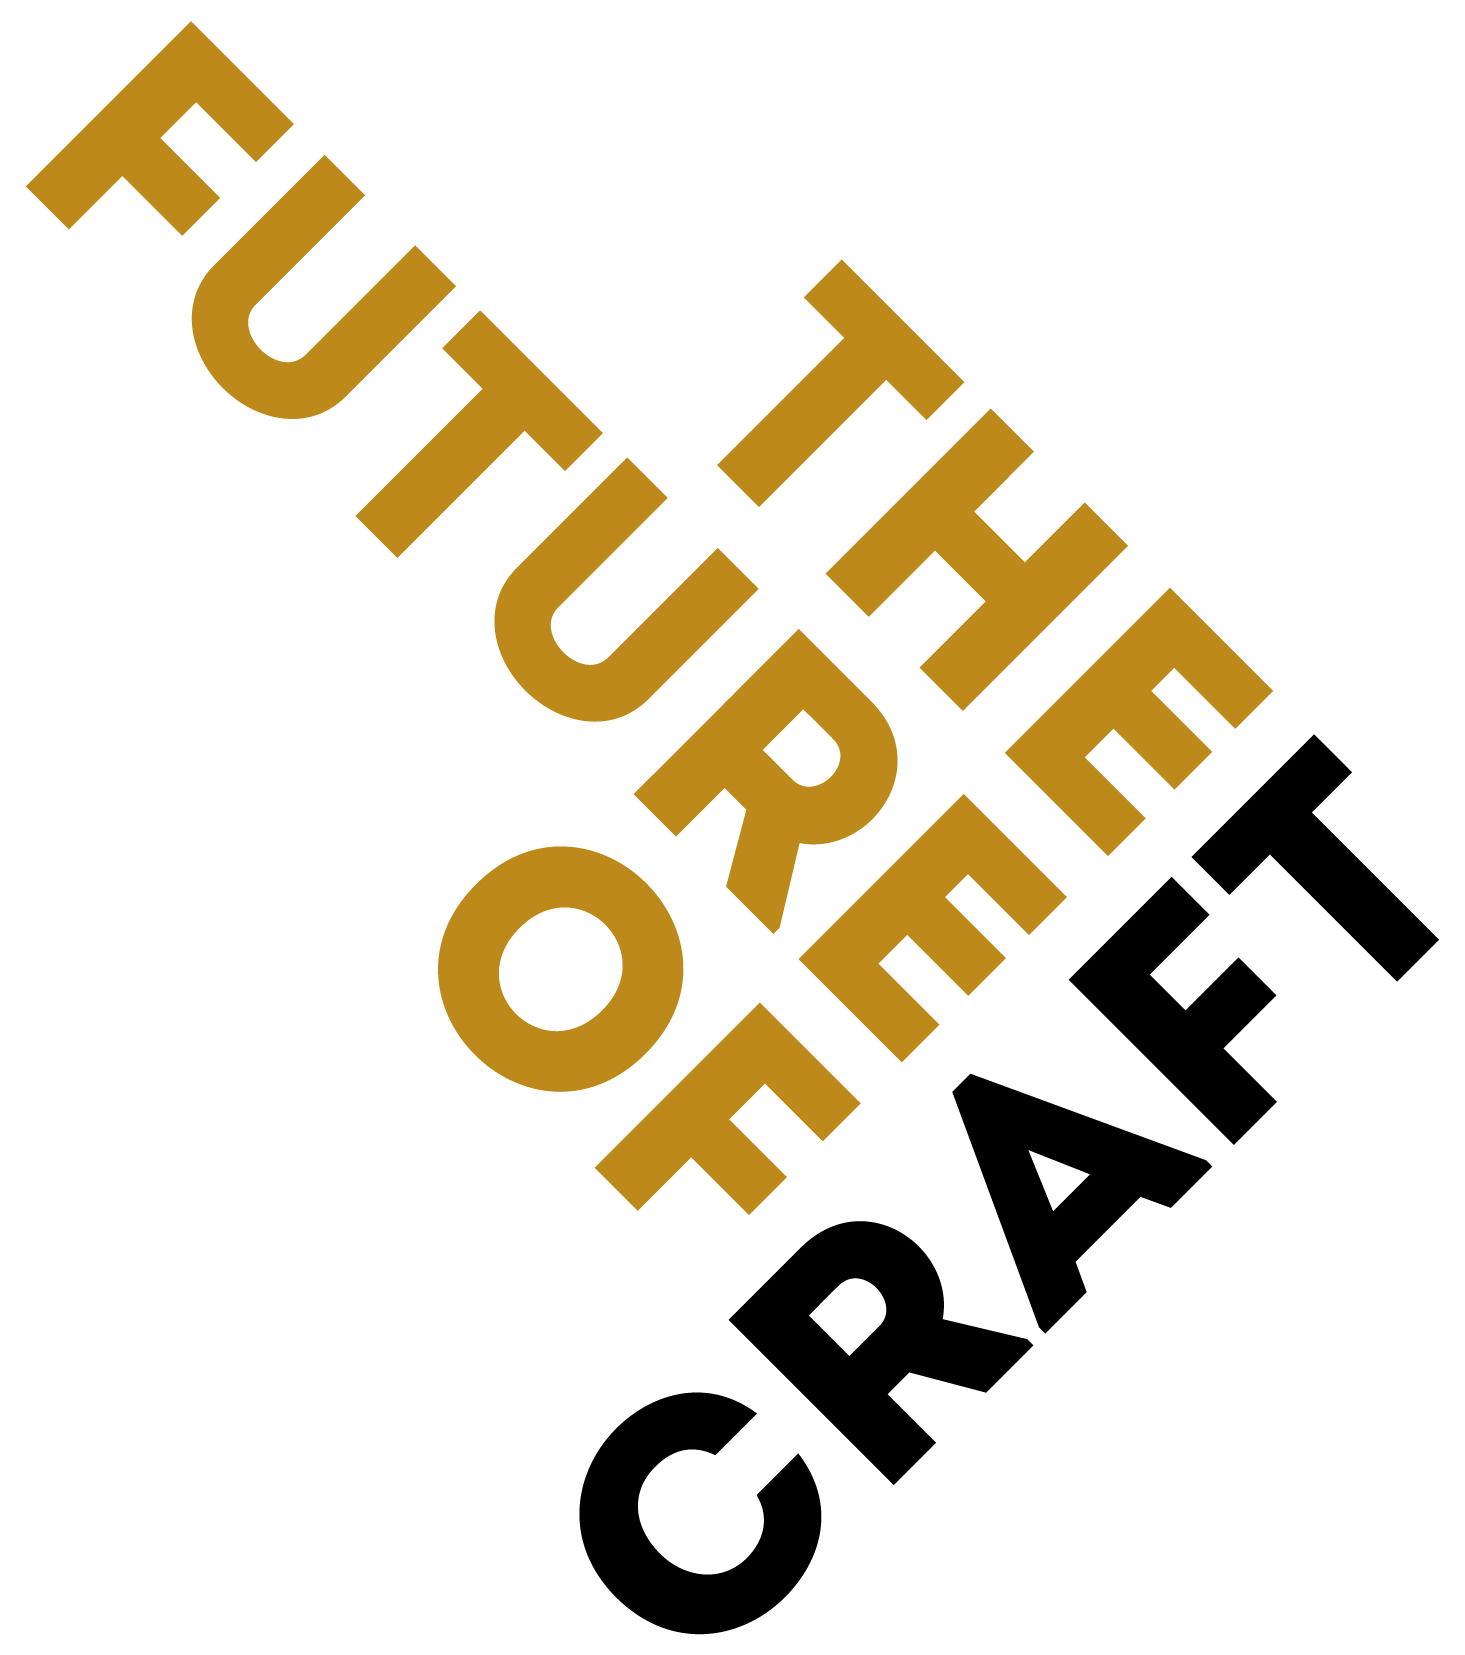 The Future of Craft is a brand new exhibition for London Craft Week and will be held in The Bargehouse behind the Oxo Tower from 9-12th May.  There will be workshops and talks throughout the show and lots of chances to get involved and learn something new.  Makers House founder Georgia Bosson will also be showing some new work at this one!